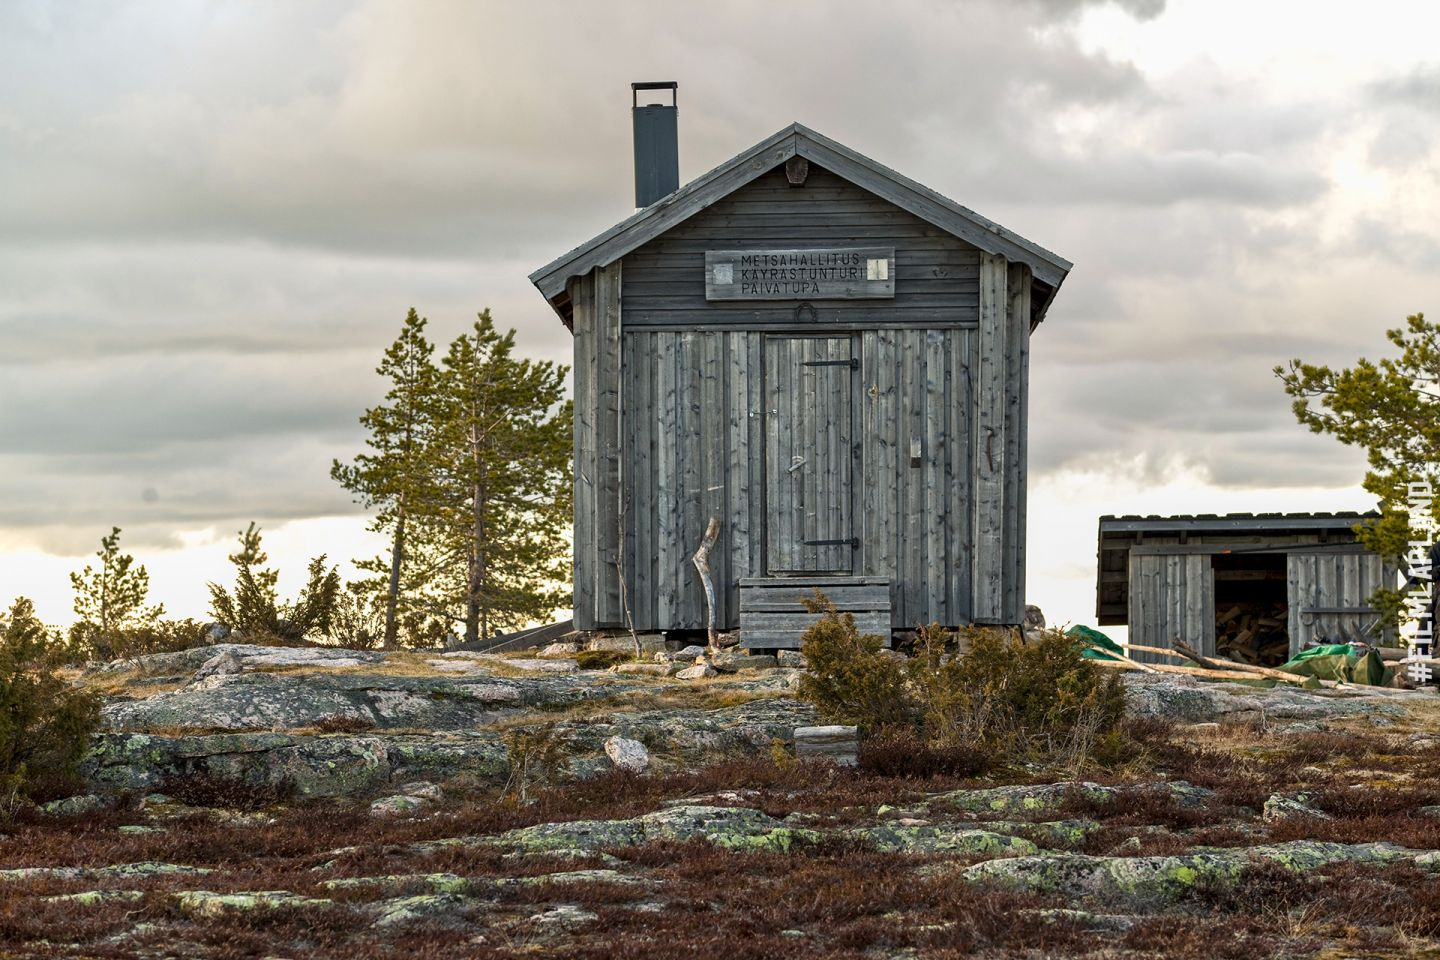 Wilderness hut in Rovaniemi, Finland